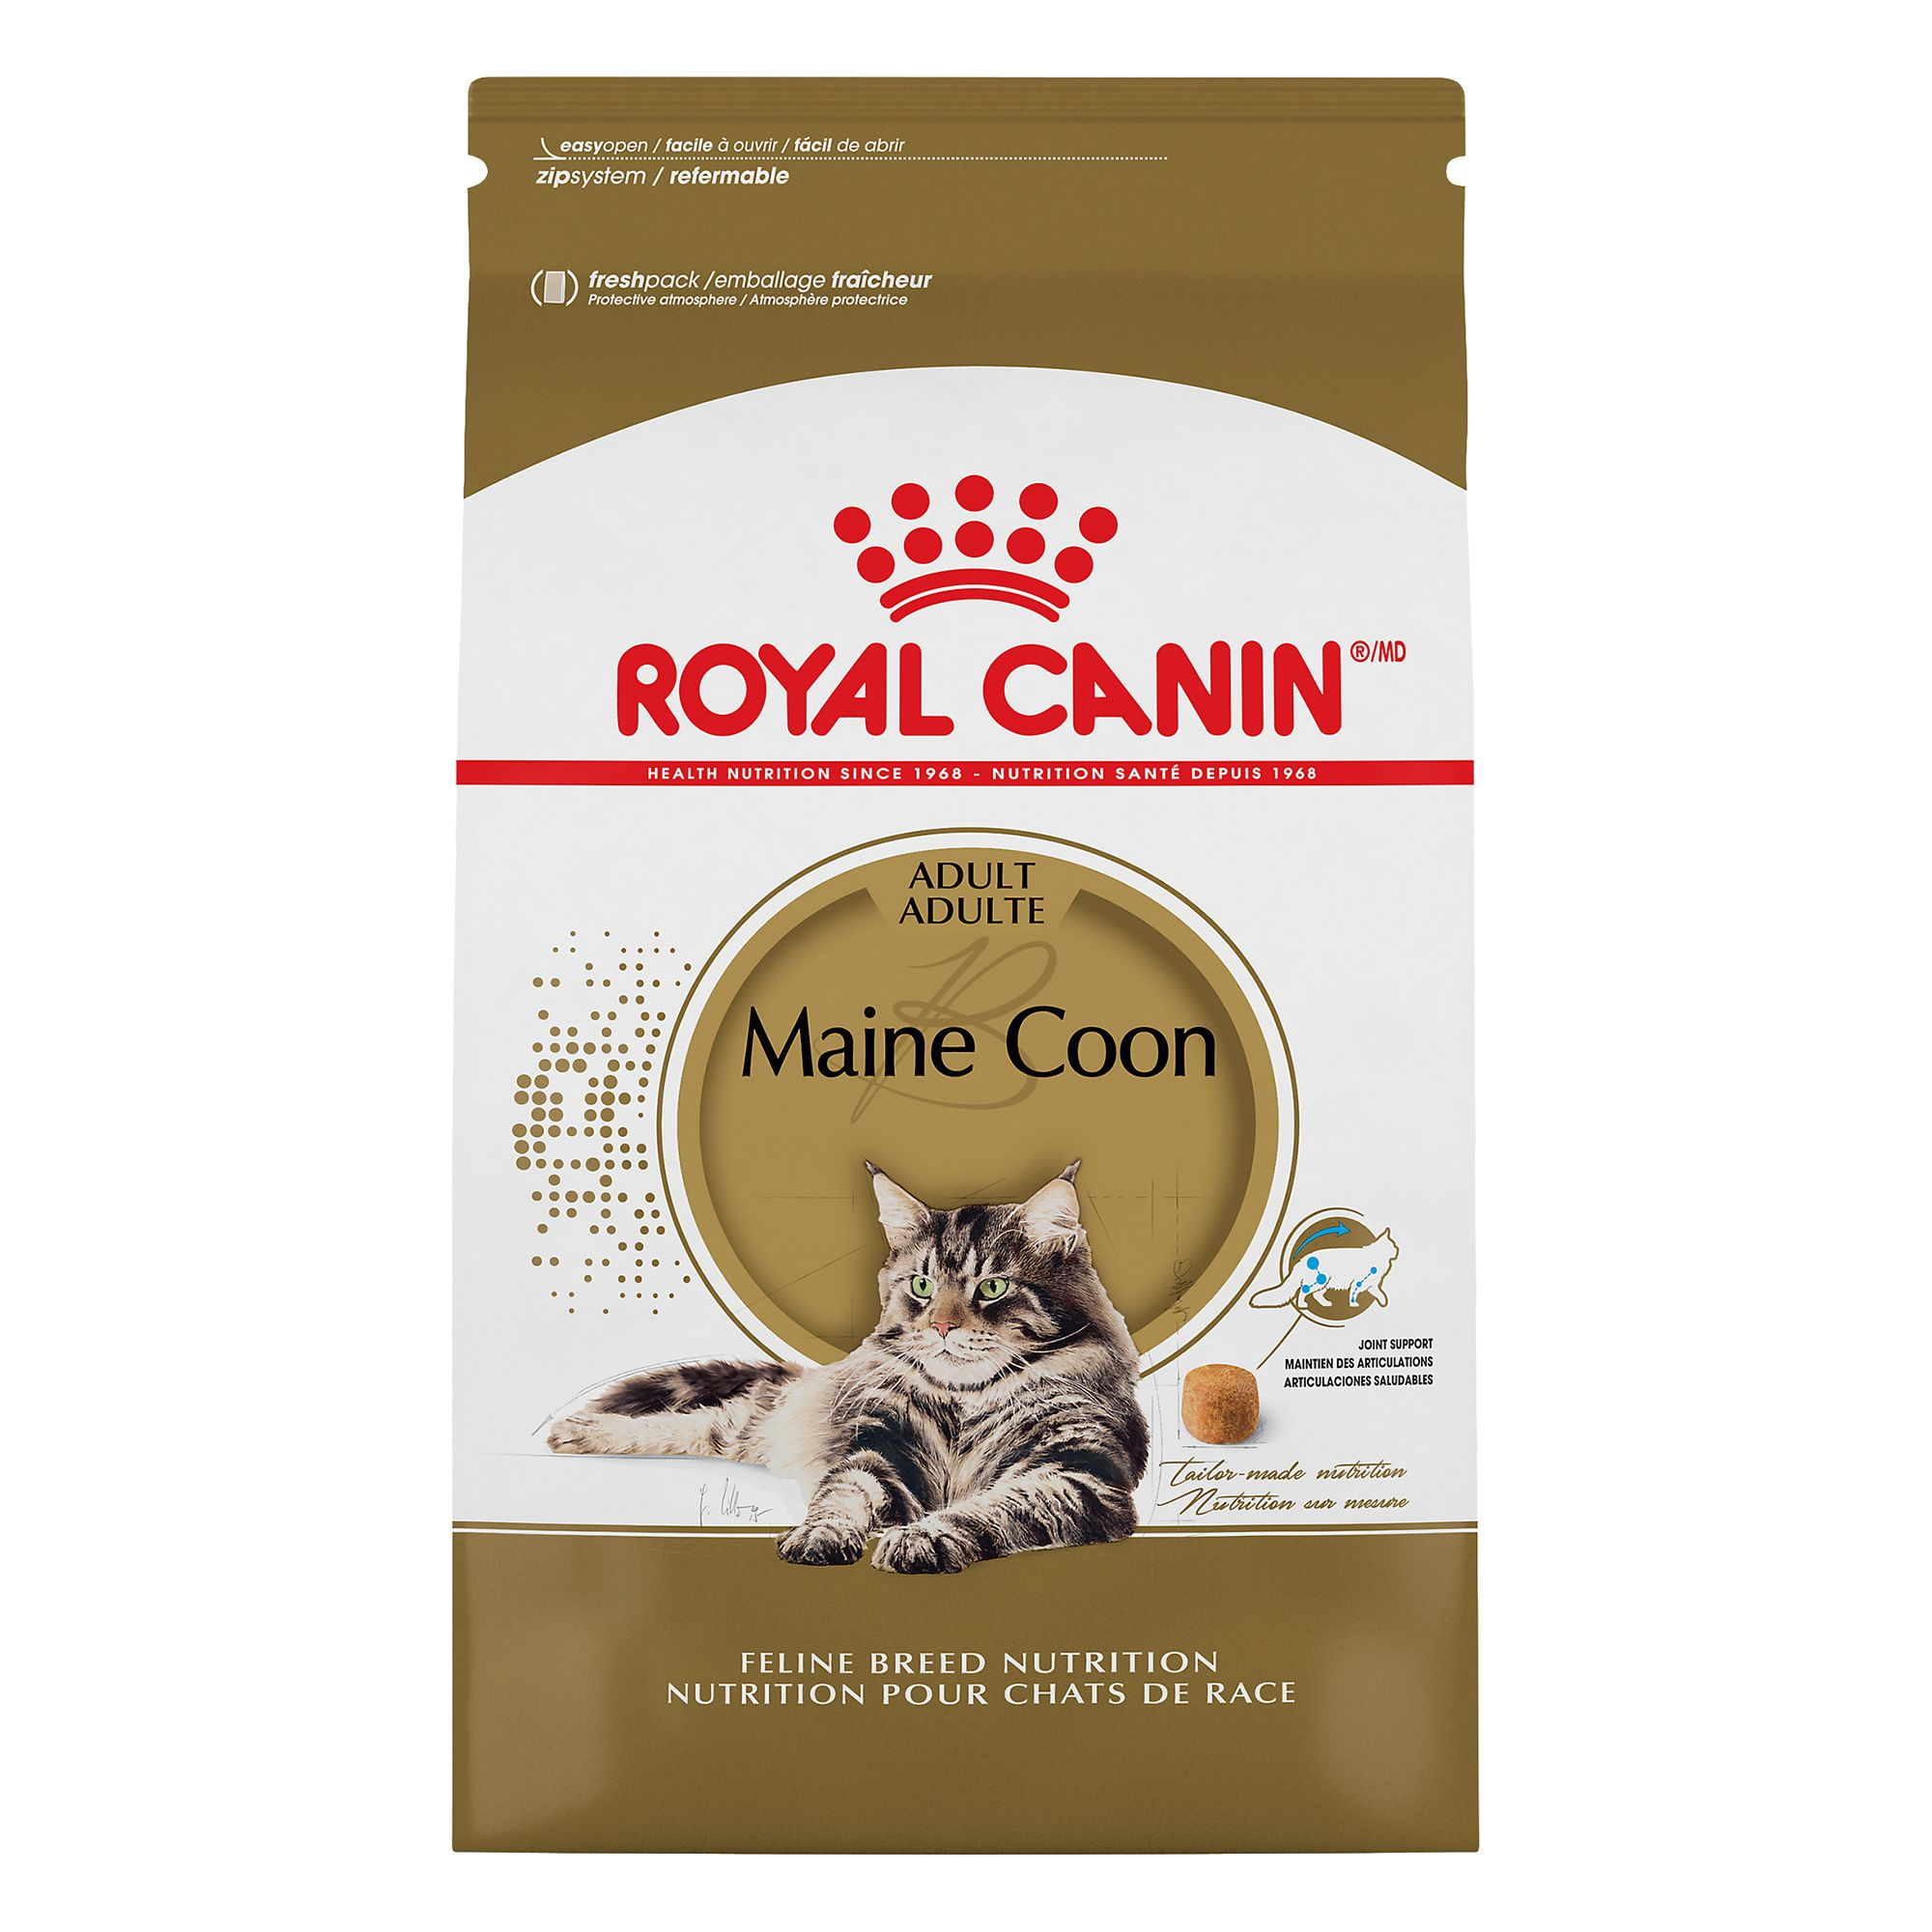 Royal Caninreg Breed Health Nutrition Maine Coon Cat Food size 6 Lb